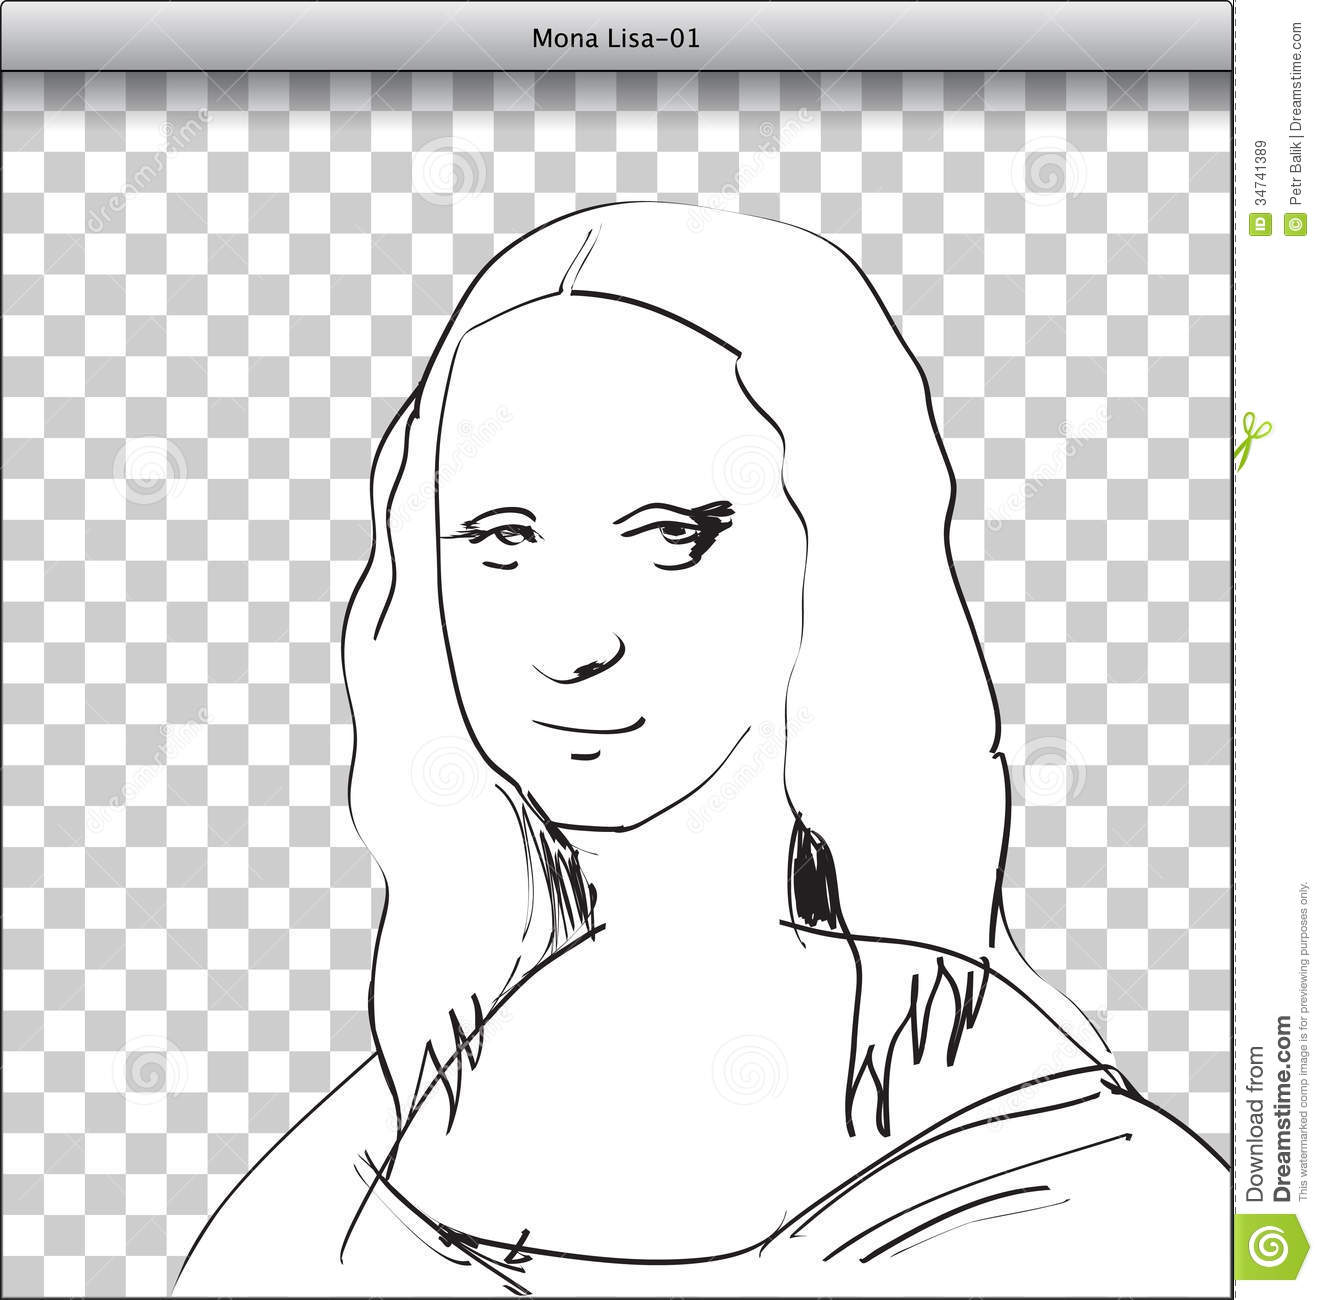 Mona Lisa Sketch In DTP Royalty Free Stock Images - Image: 34741389